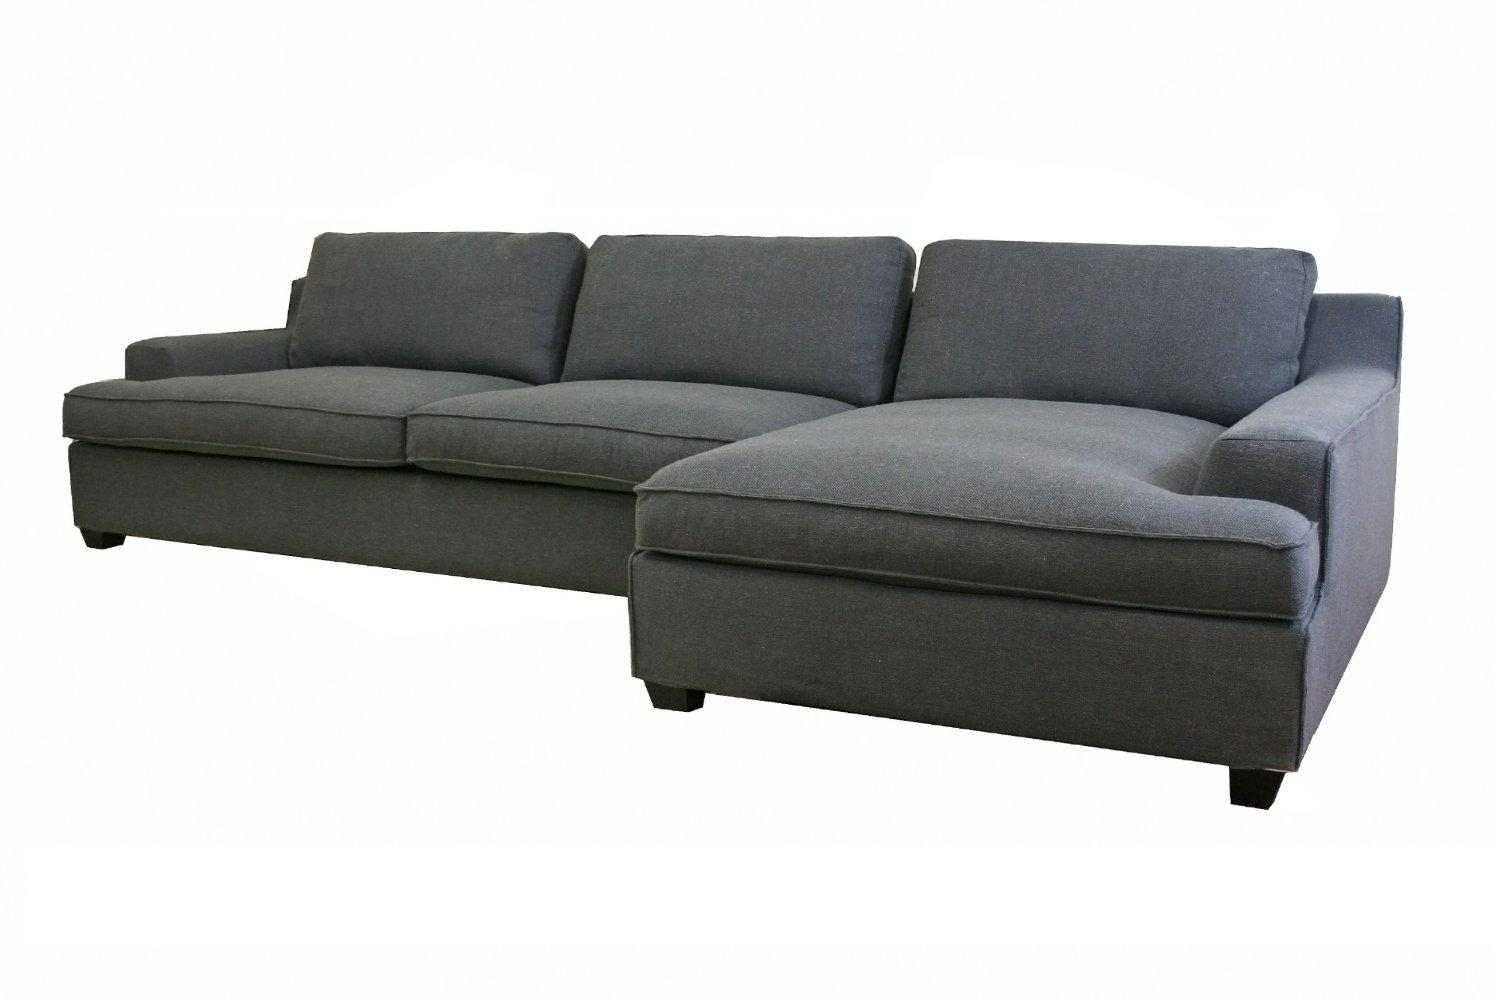 Sectional Sofa With Sleeper And Chaise – Ansugallery In Sectional Sofas With Sleeper And Chaise (View 5 of 21)